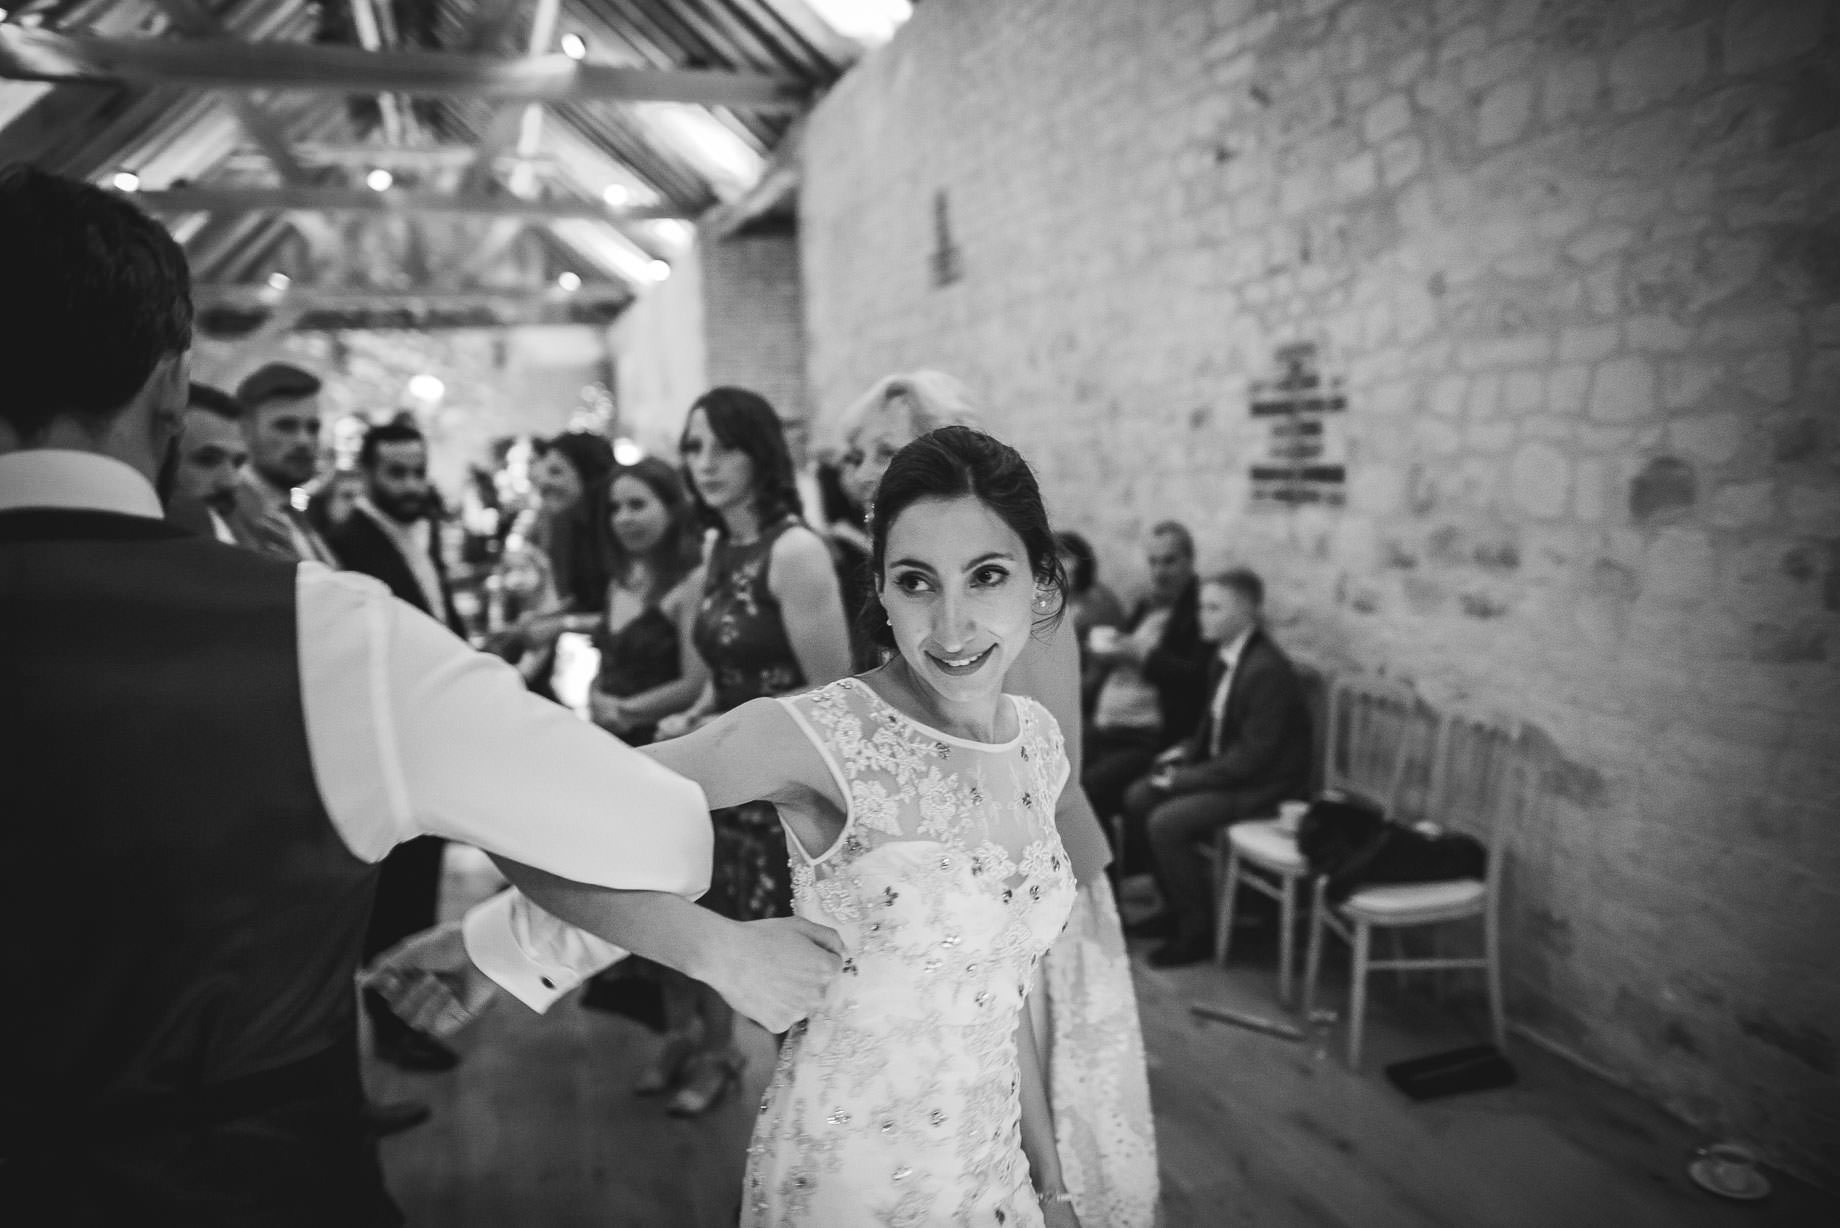 bury-court-barn-wedding-photography-guy-collier-photography-nadia-tom-172-of-184